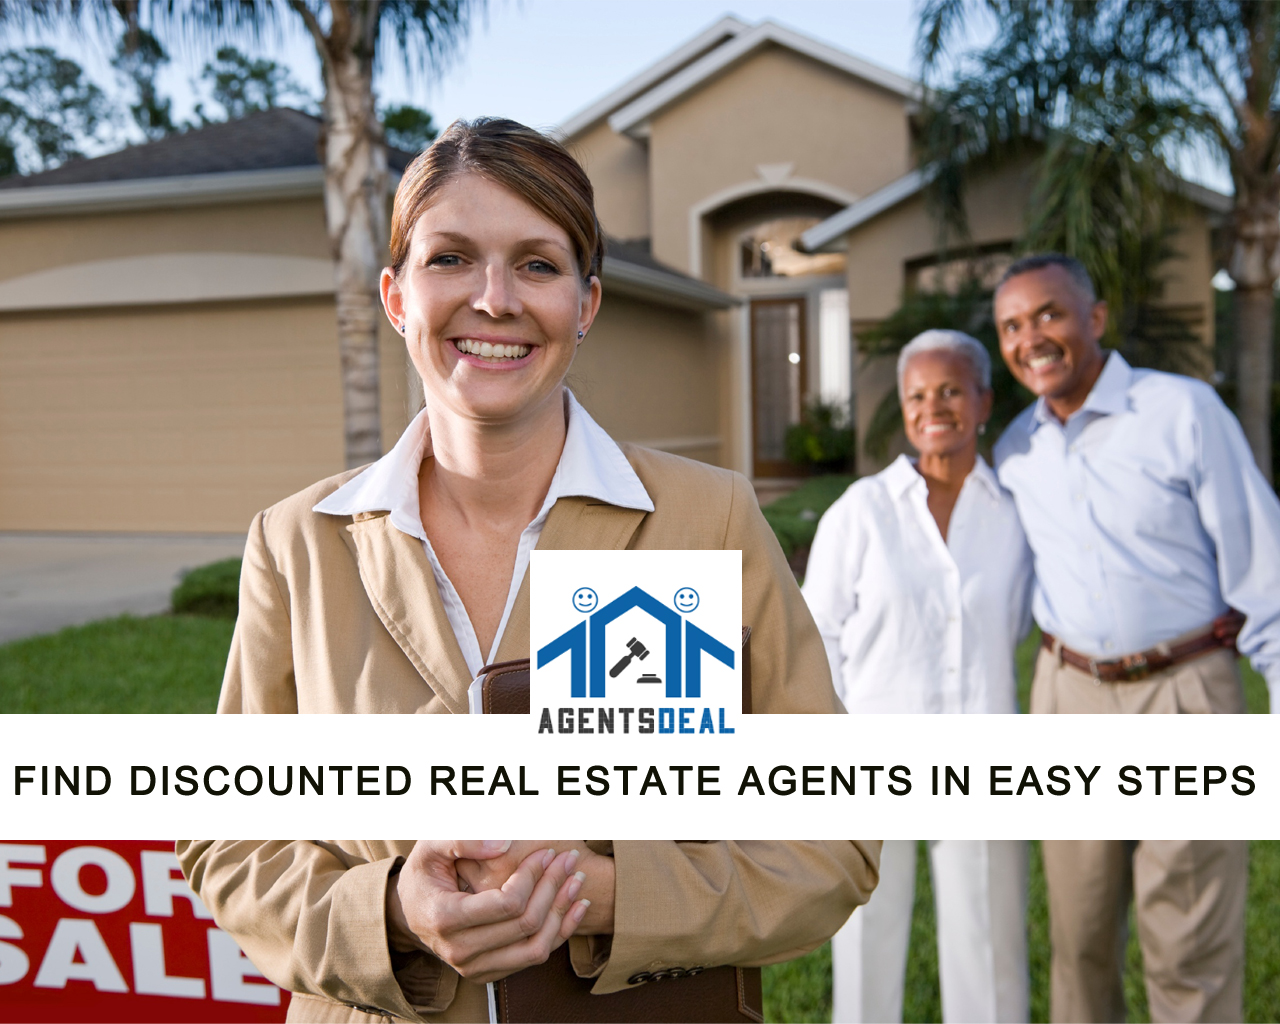 Find Discounted Real Estate Agents in 6 easy step